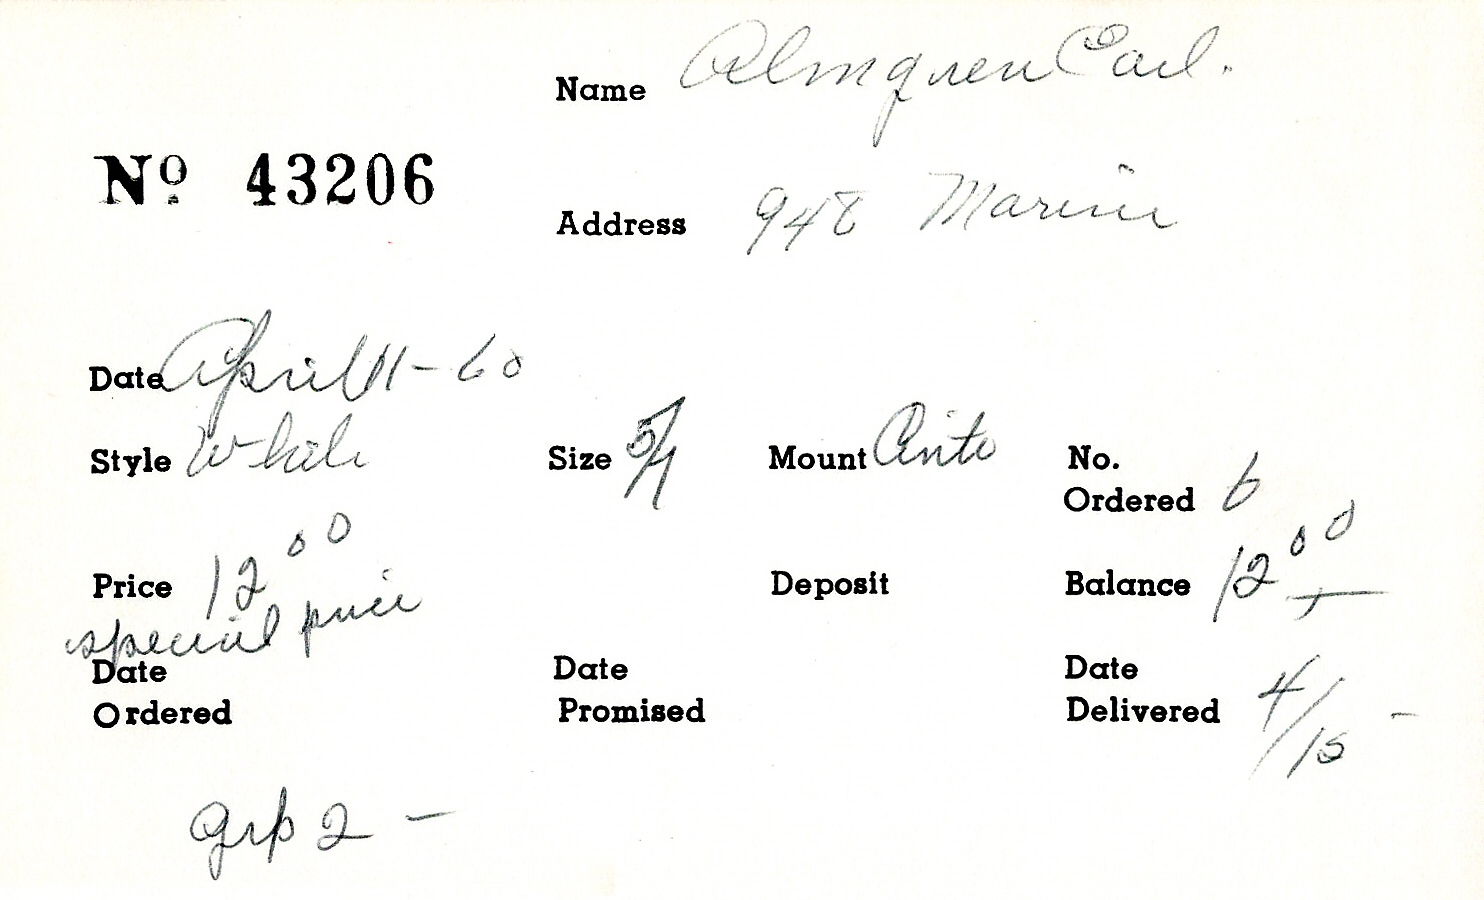 Index card for Earl Almgren